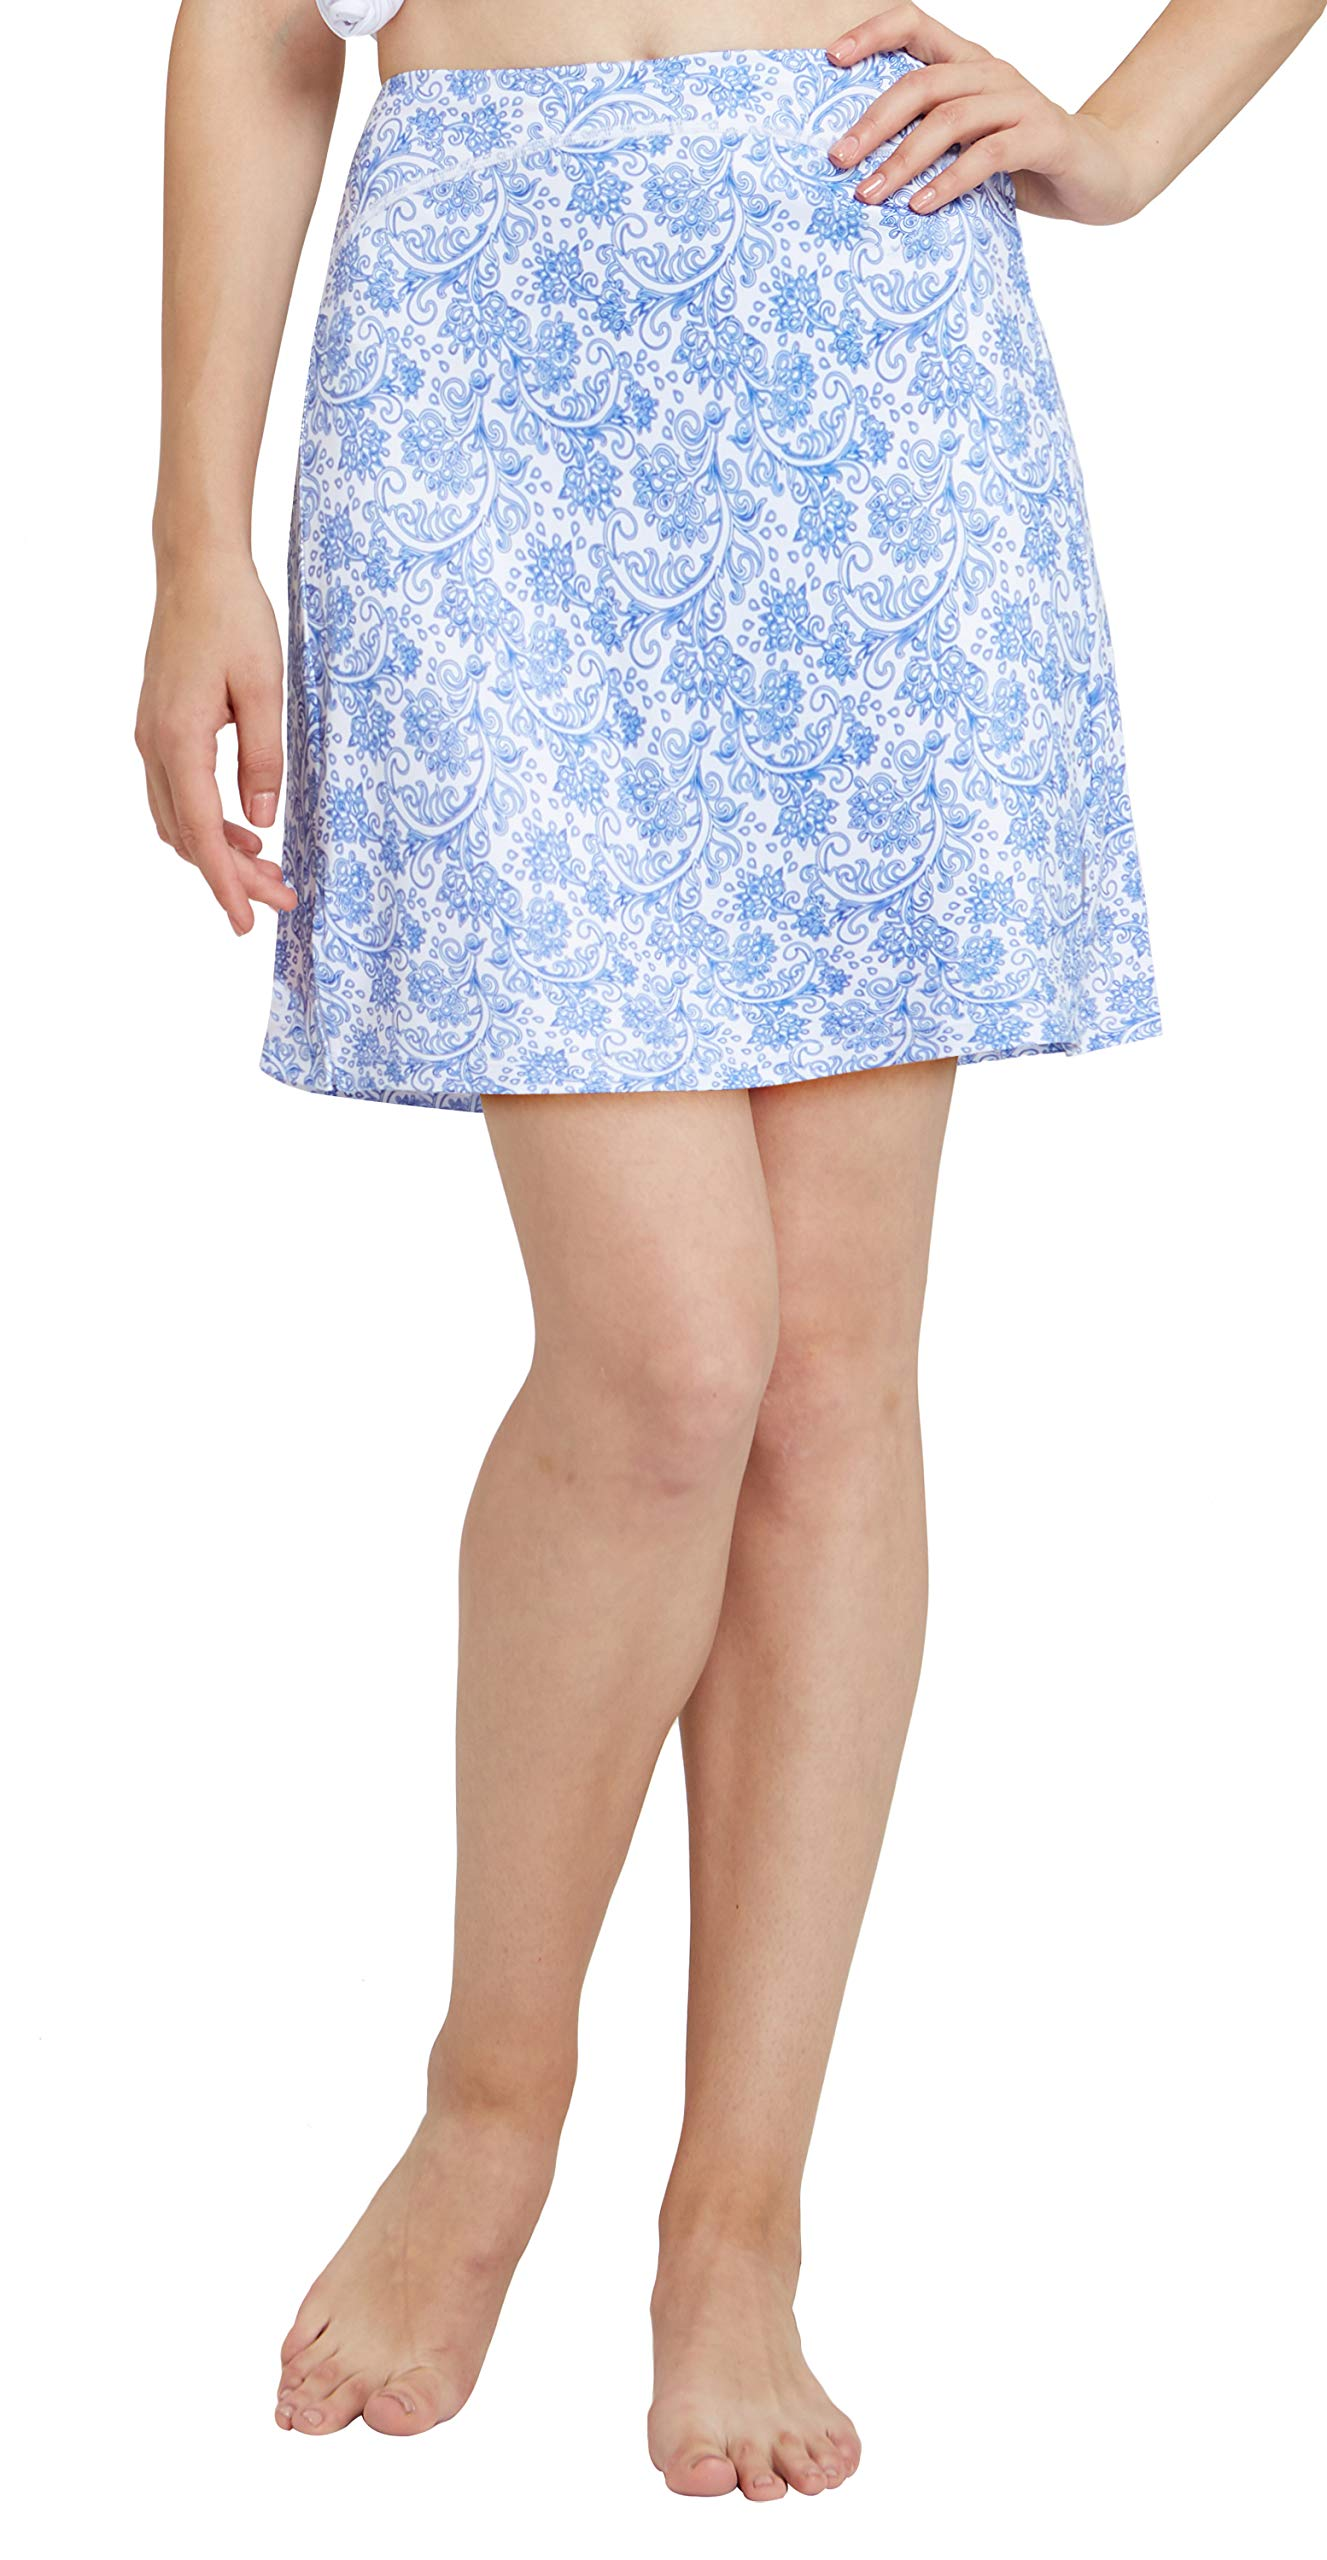 slimour Women Print Golf Skirt Travel Skirts with Pockets Swim Skirt High Waist with Shorts Blue Iris XS by slimour